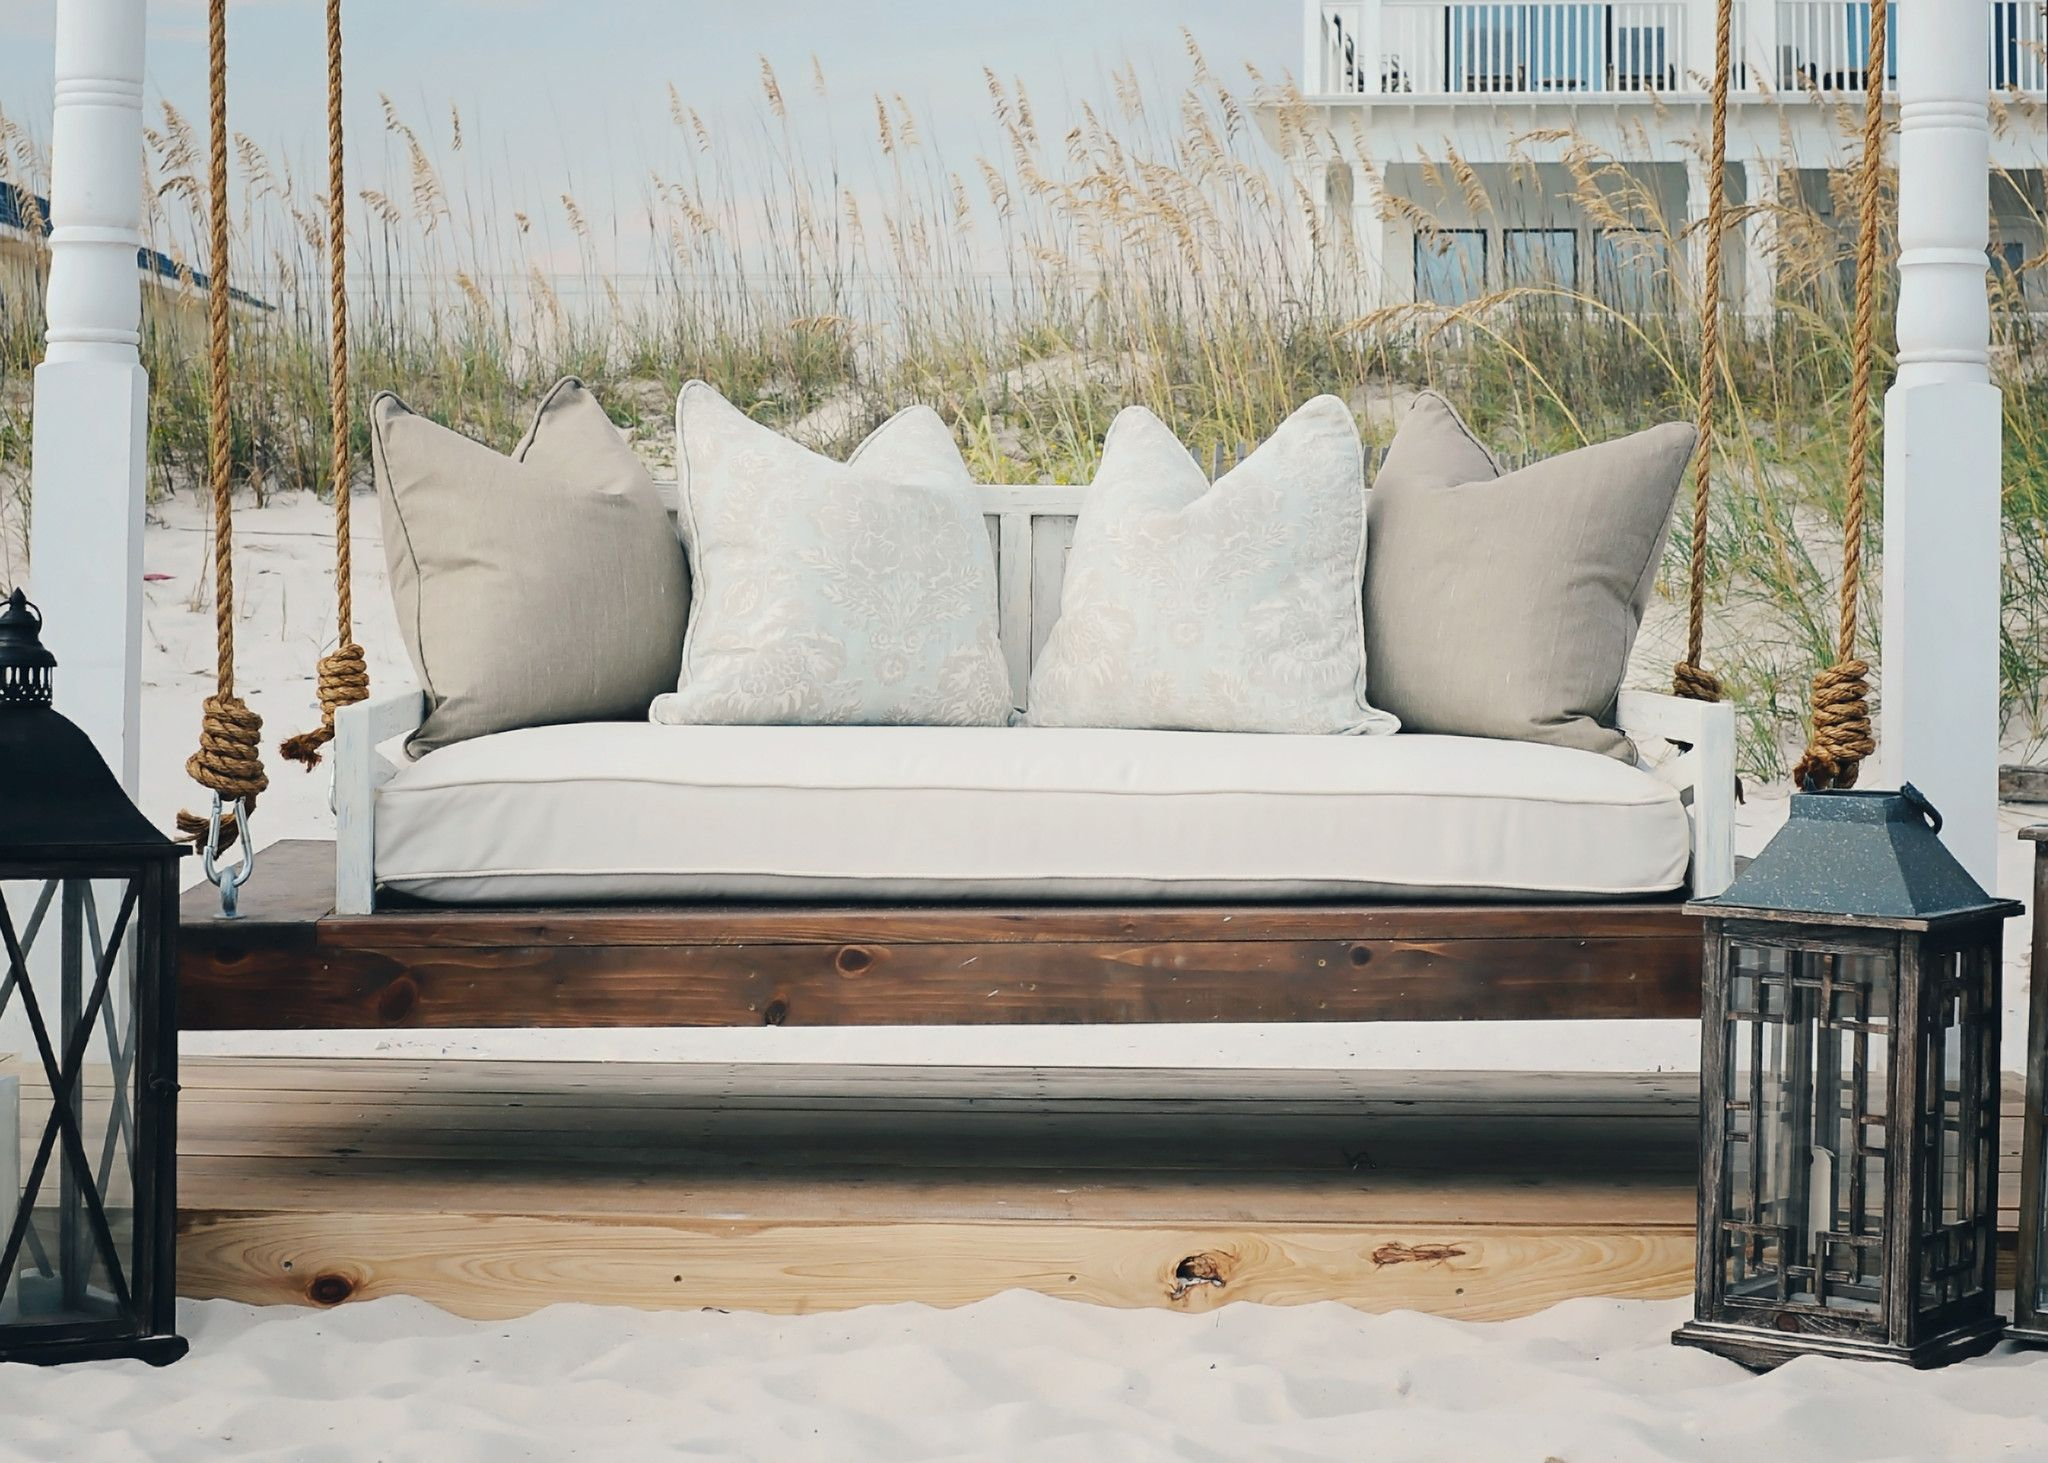 Saltaire Daybed Swing Free Shipping Porch Swing Bed Diy